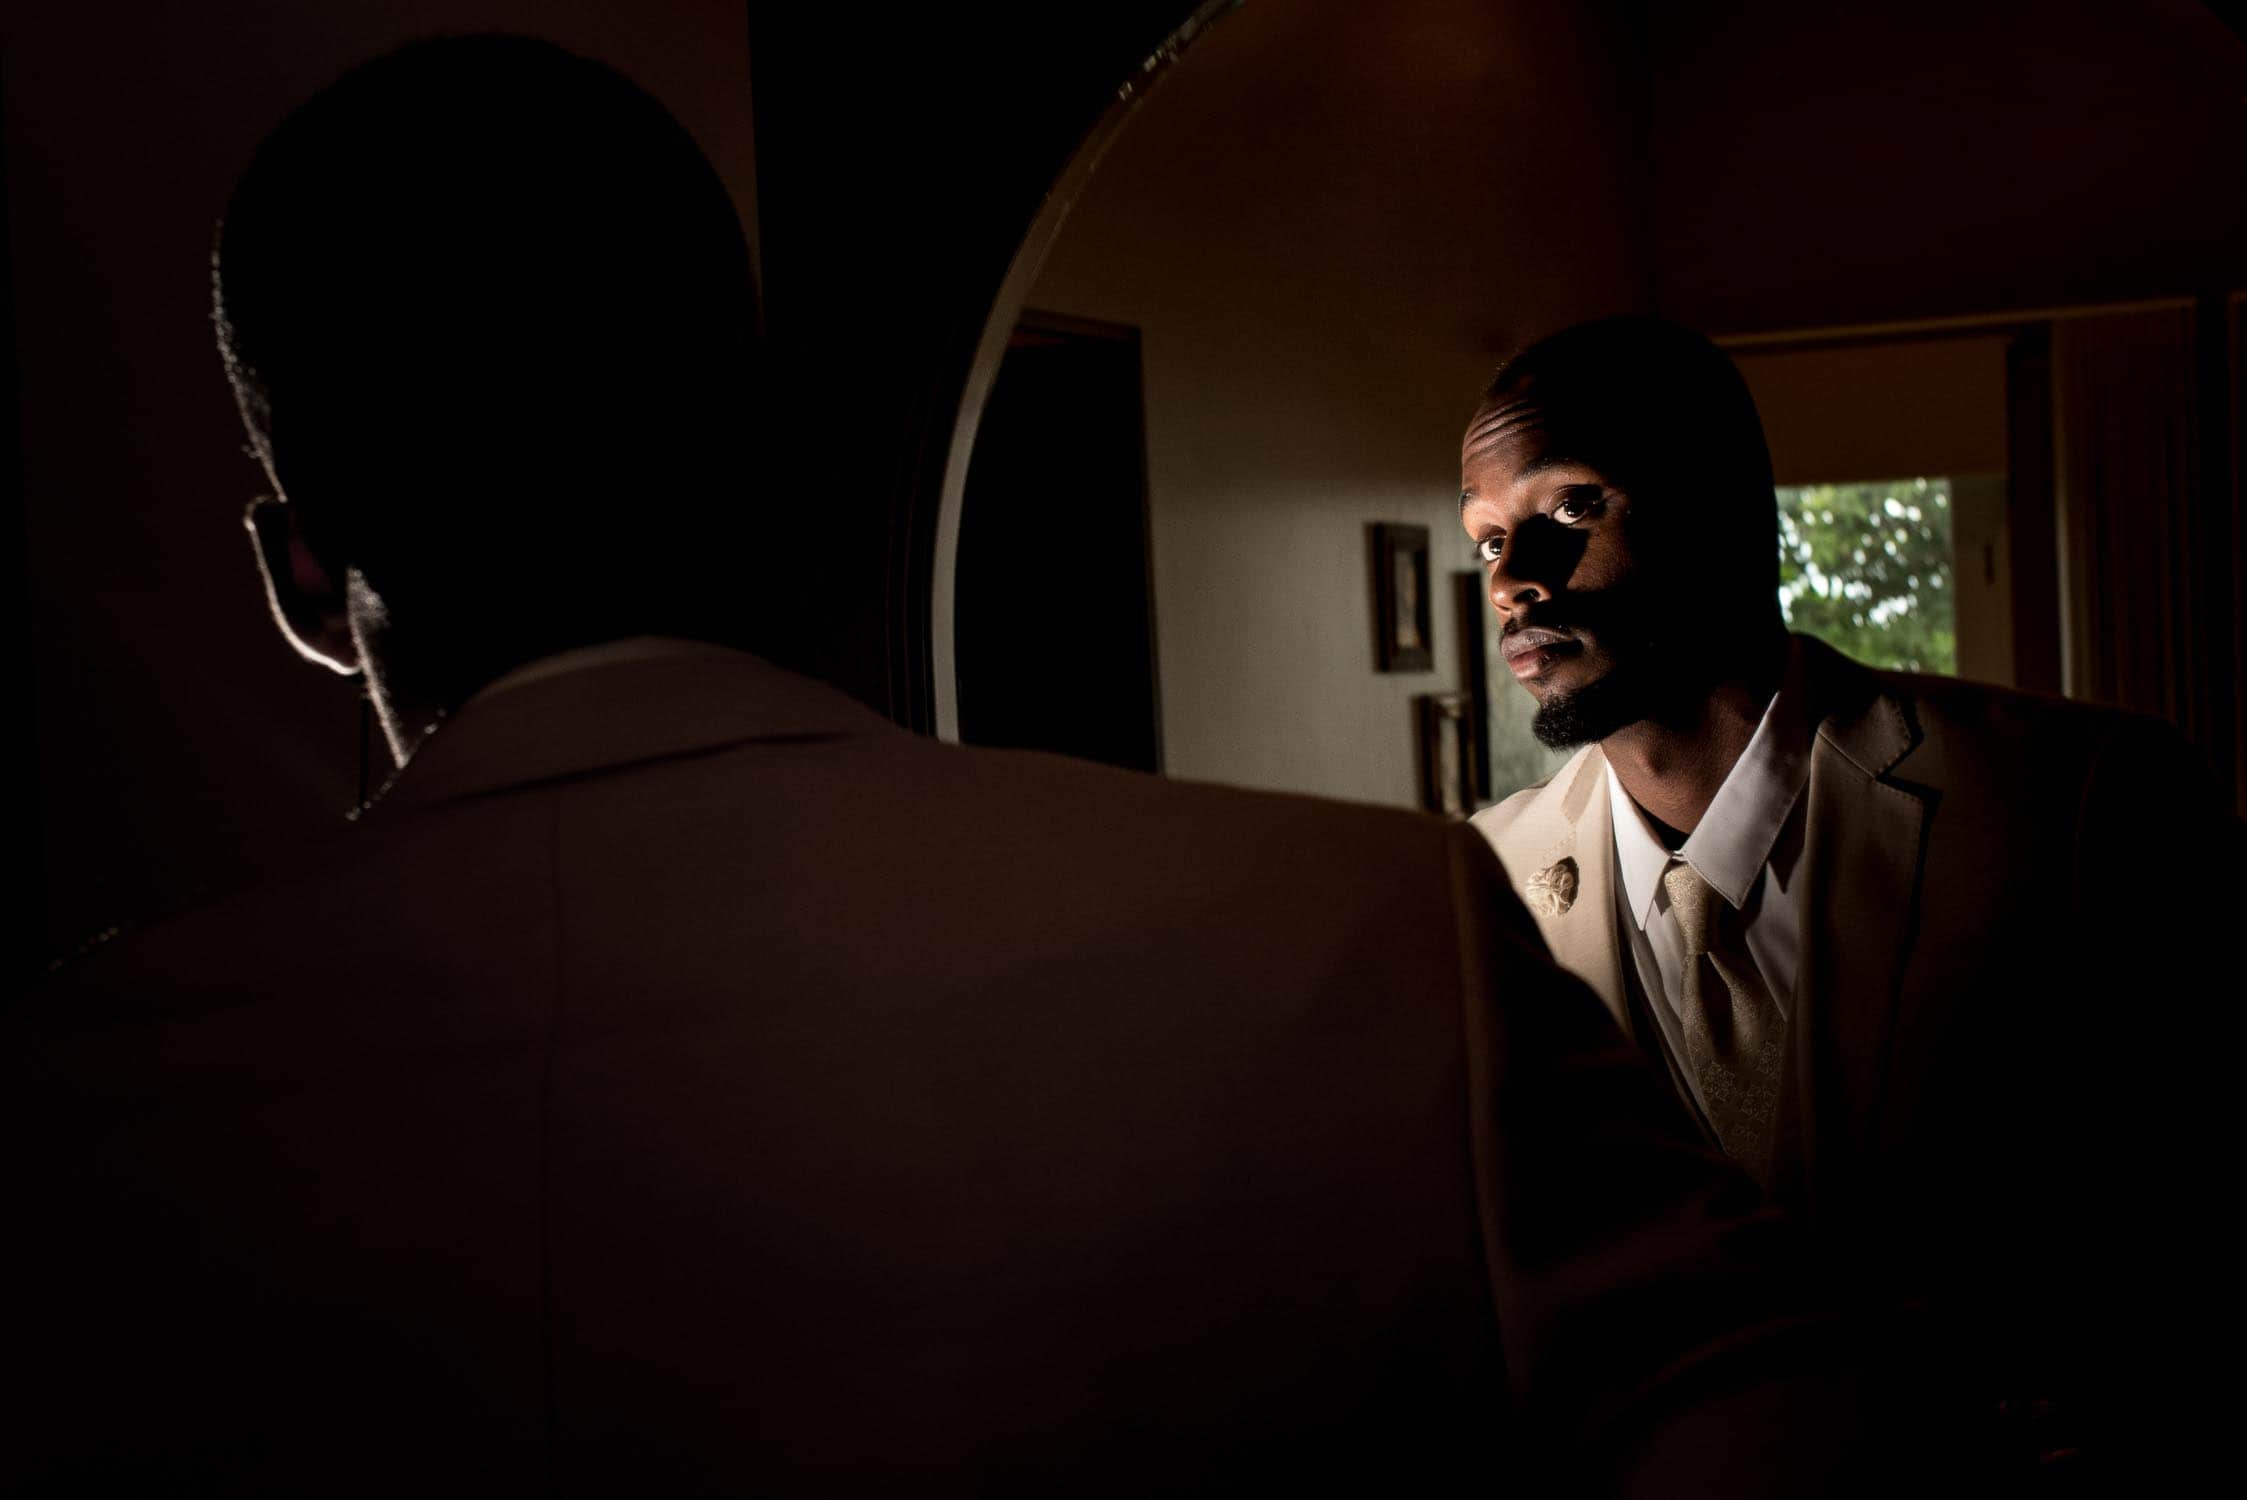 Groom before wedding ceremony looking in mirror